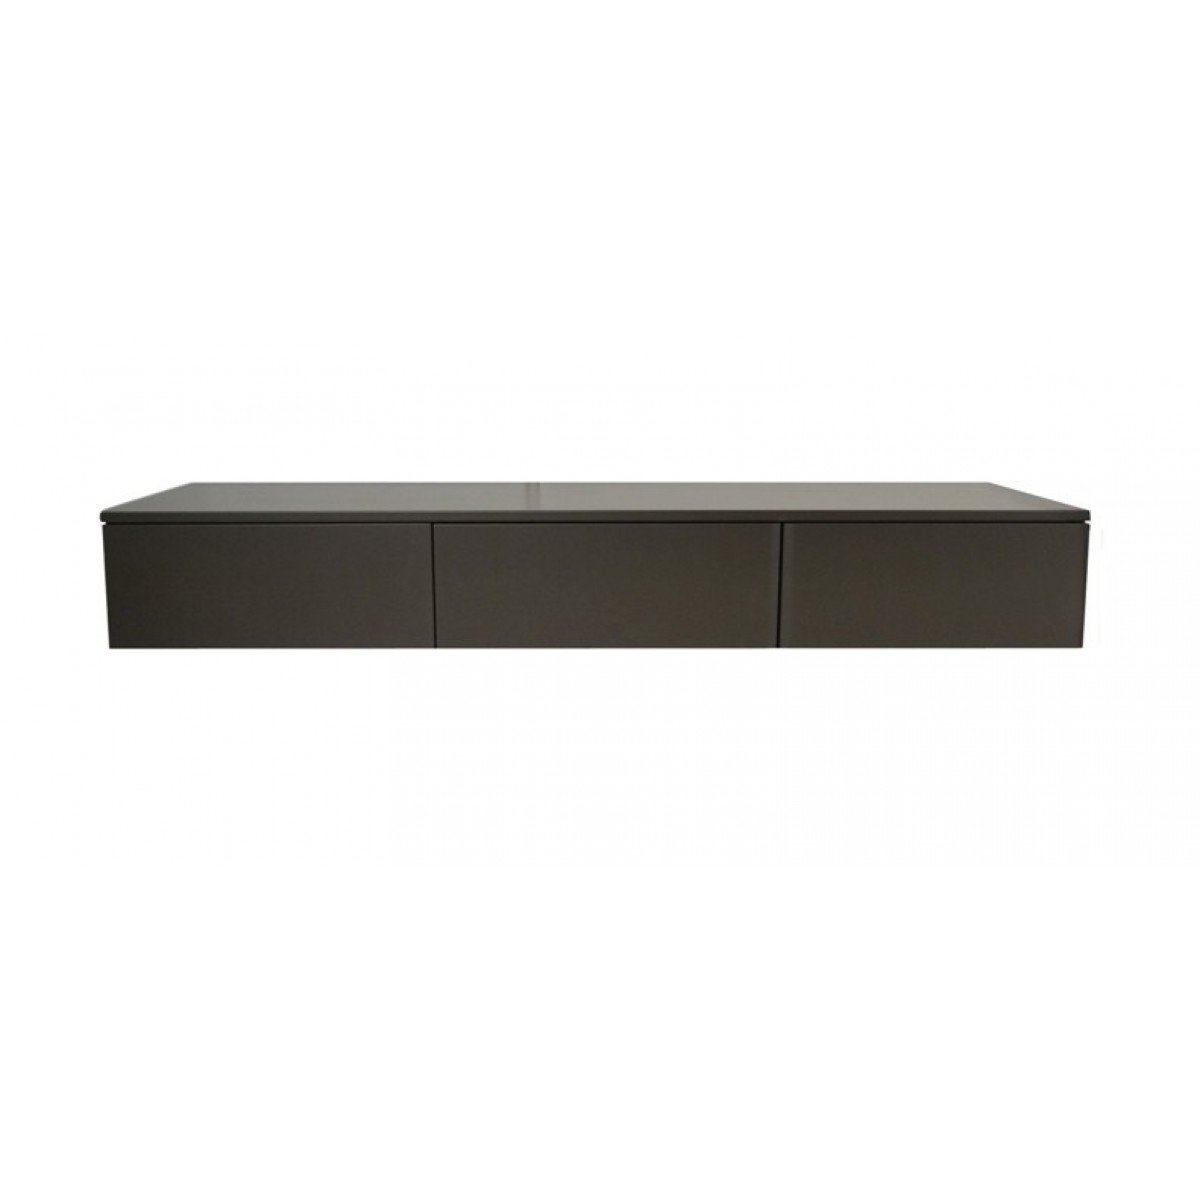 hangend-hang-tv-dressoir-meubel-kleur-basalt-laden-basalt